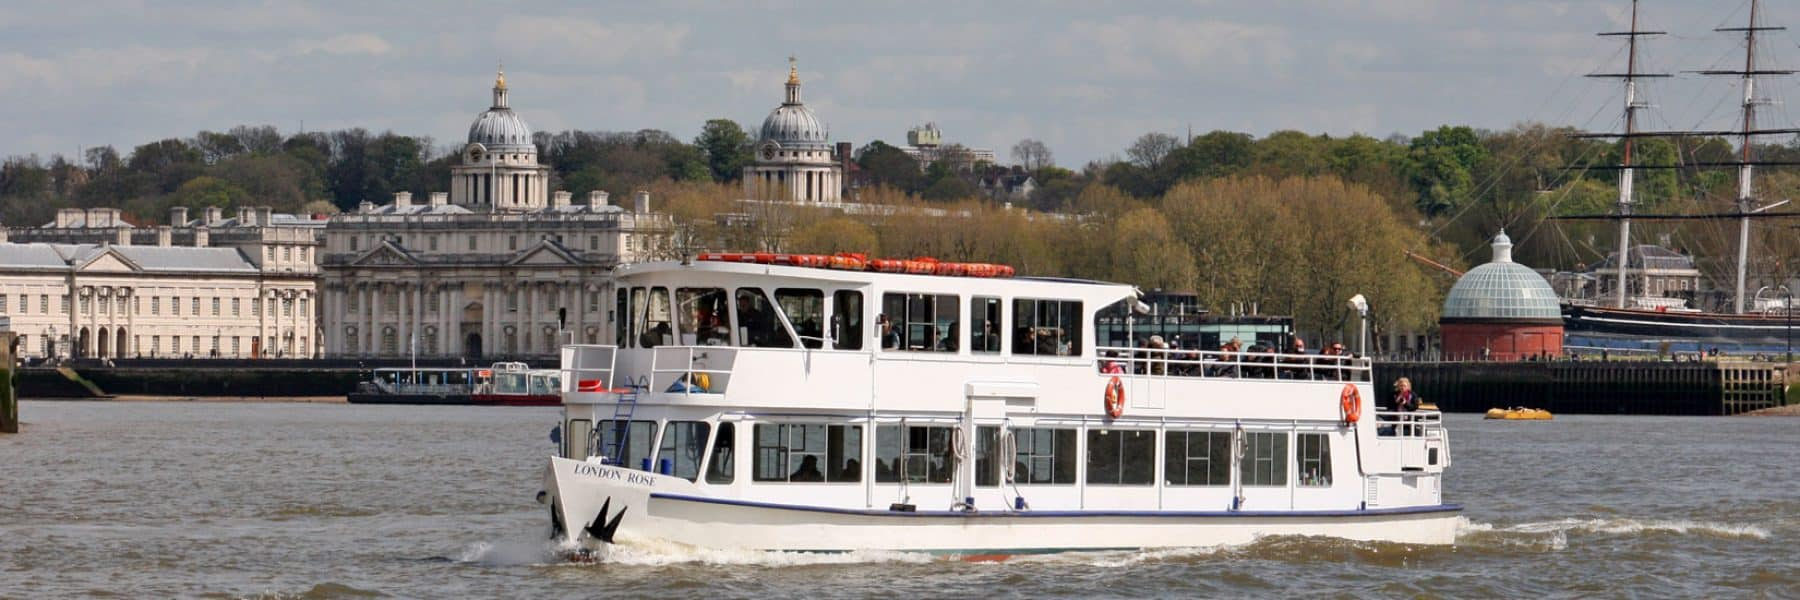 M.V London Rose passing the Royal Borough of Greenwich